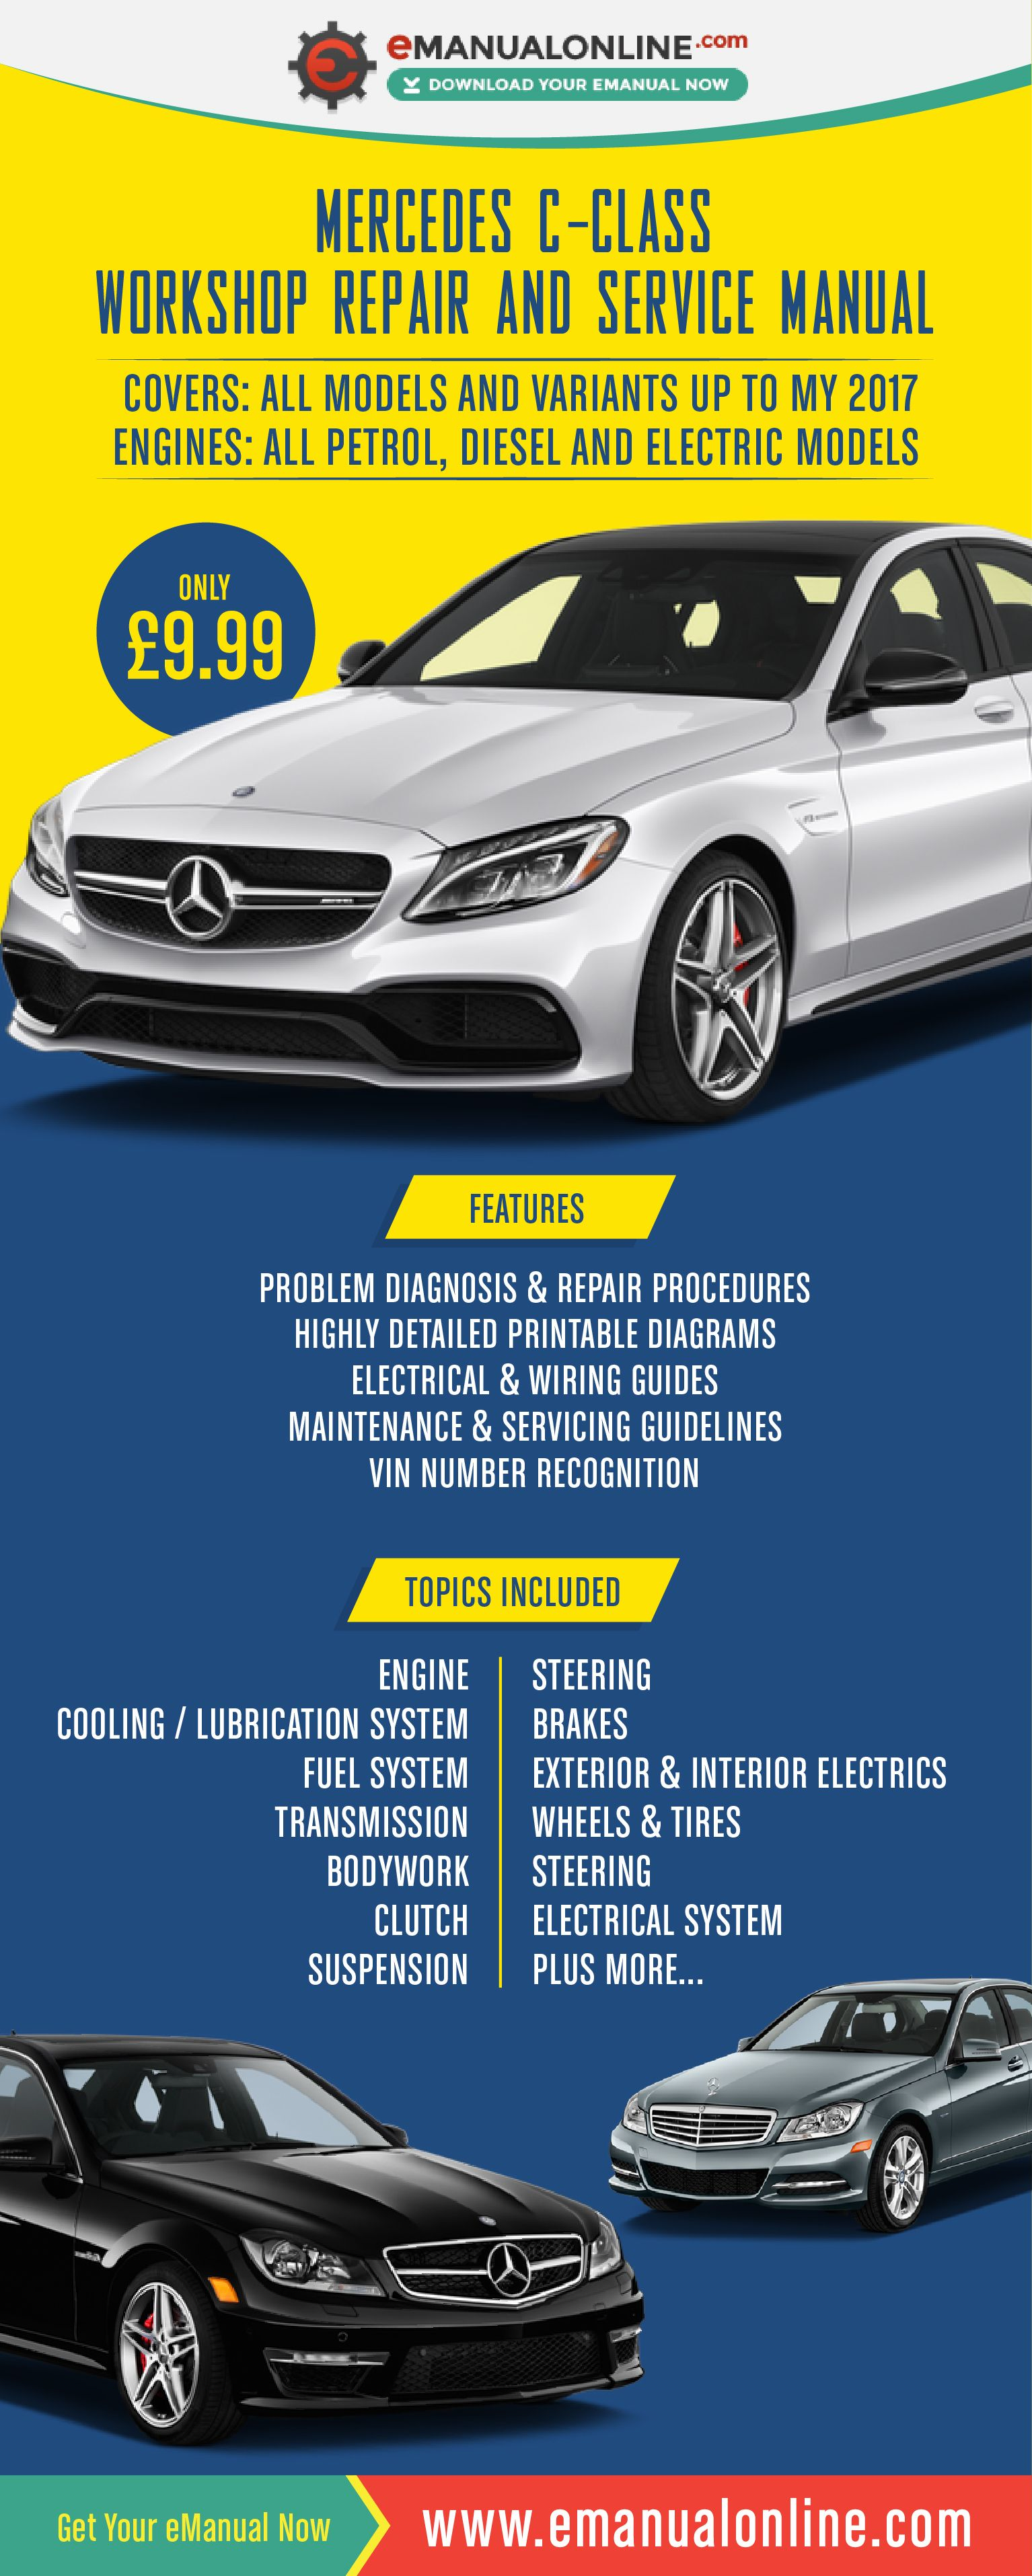 mercedes c class workshop repair and service manual the detailed information contained within this workshop manual is quite simply stu cars bikes  [ 1534 x 3830 Pixel ]